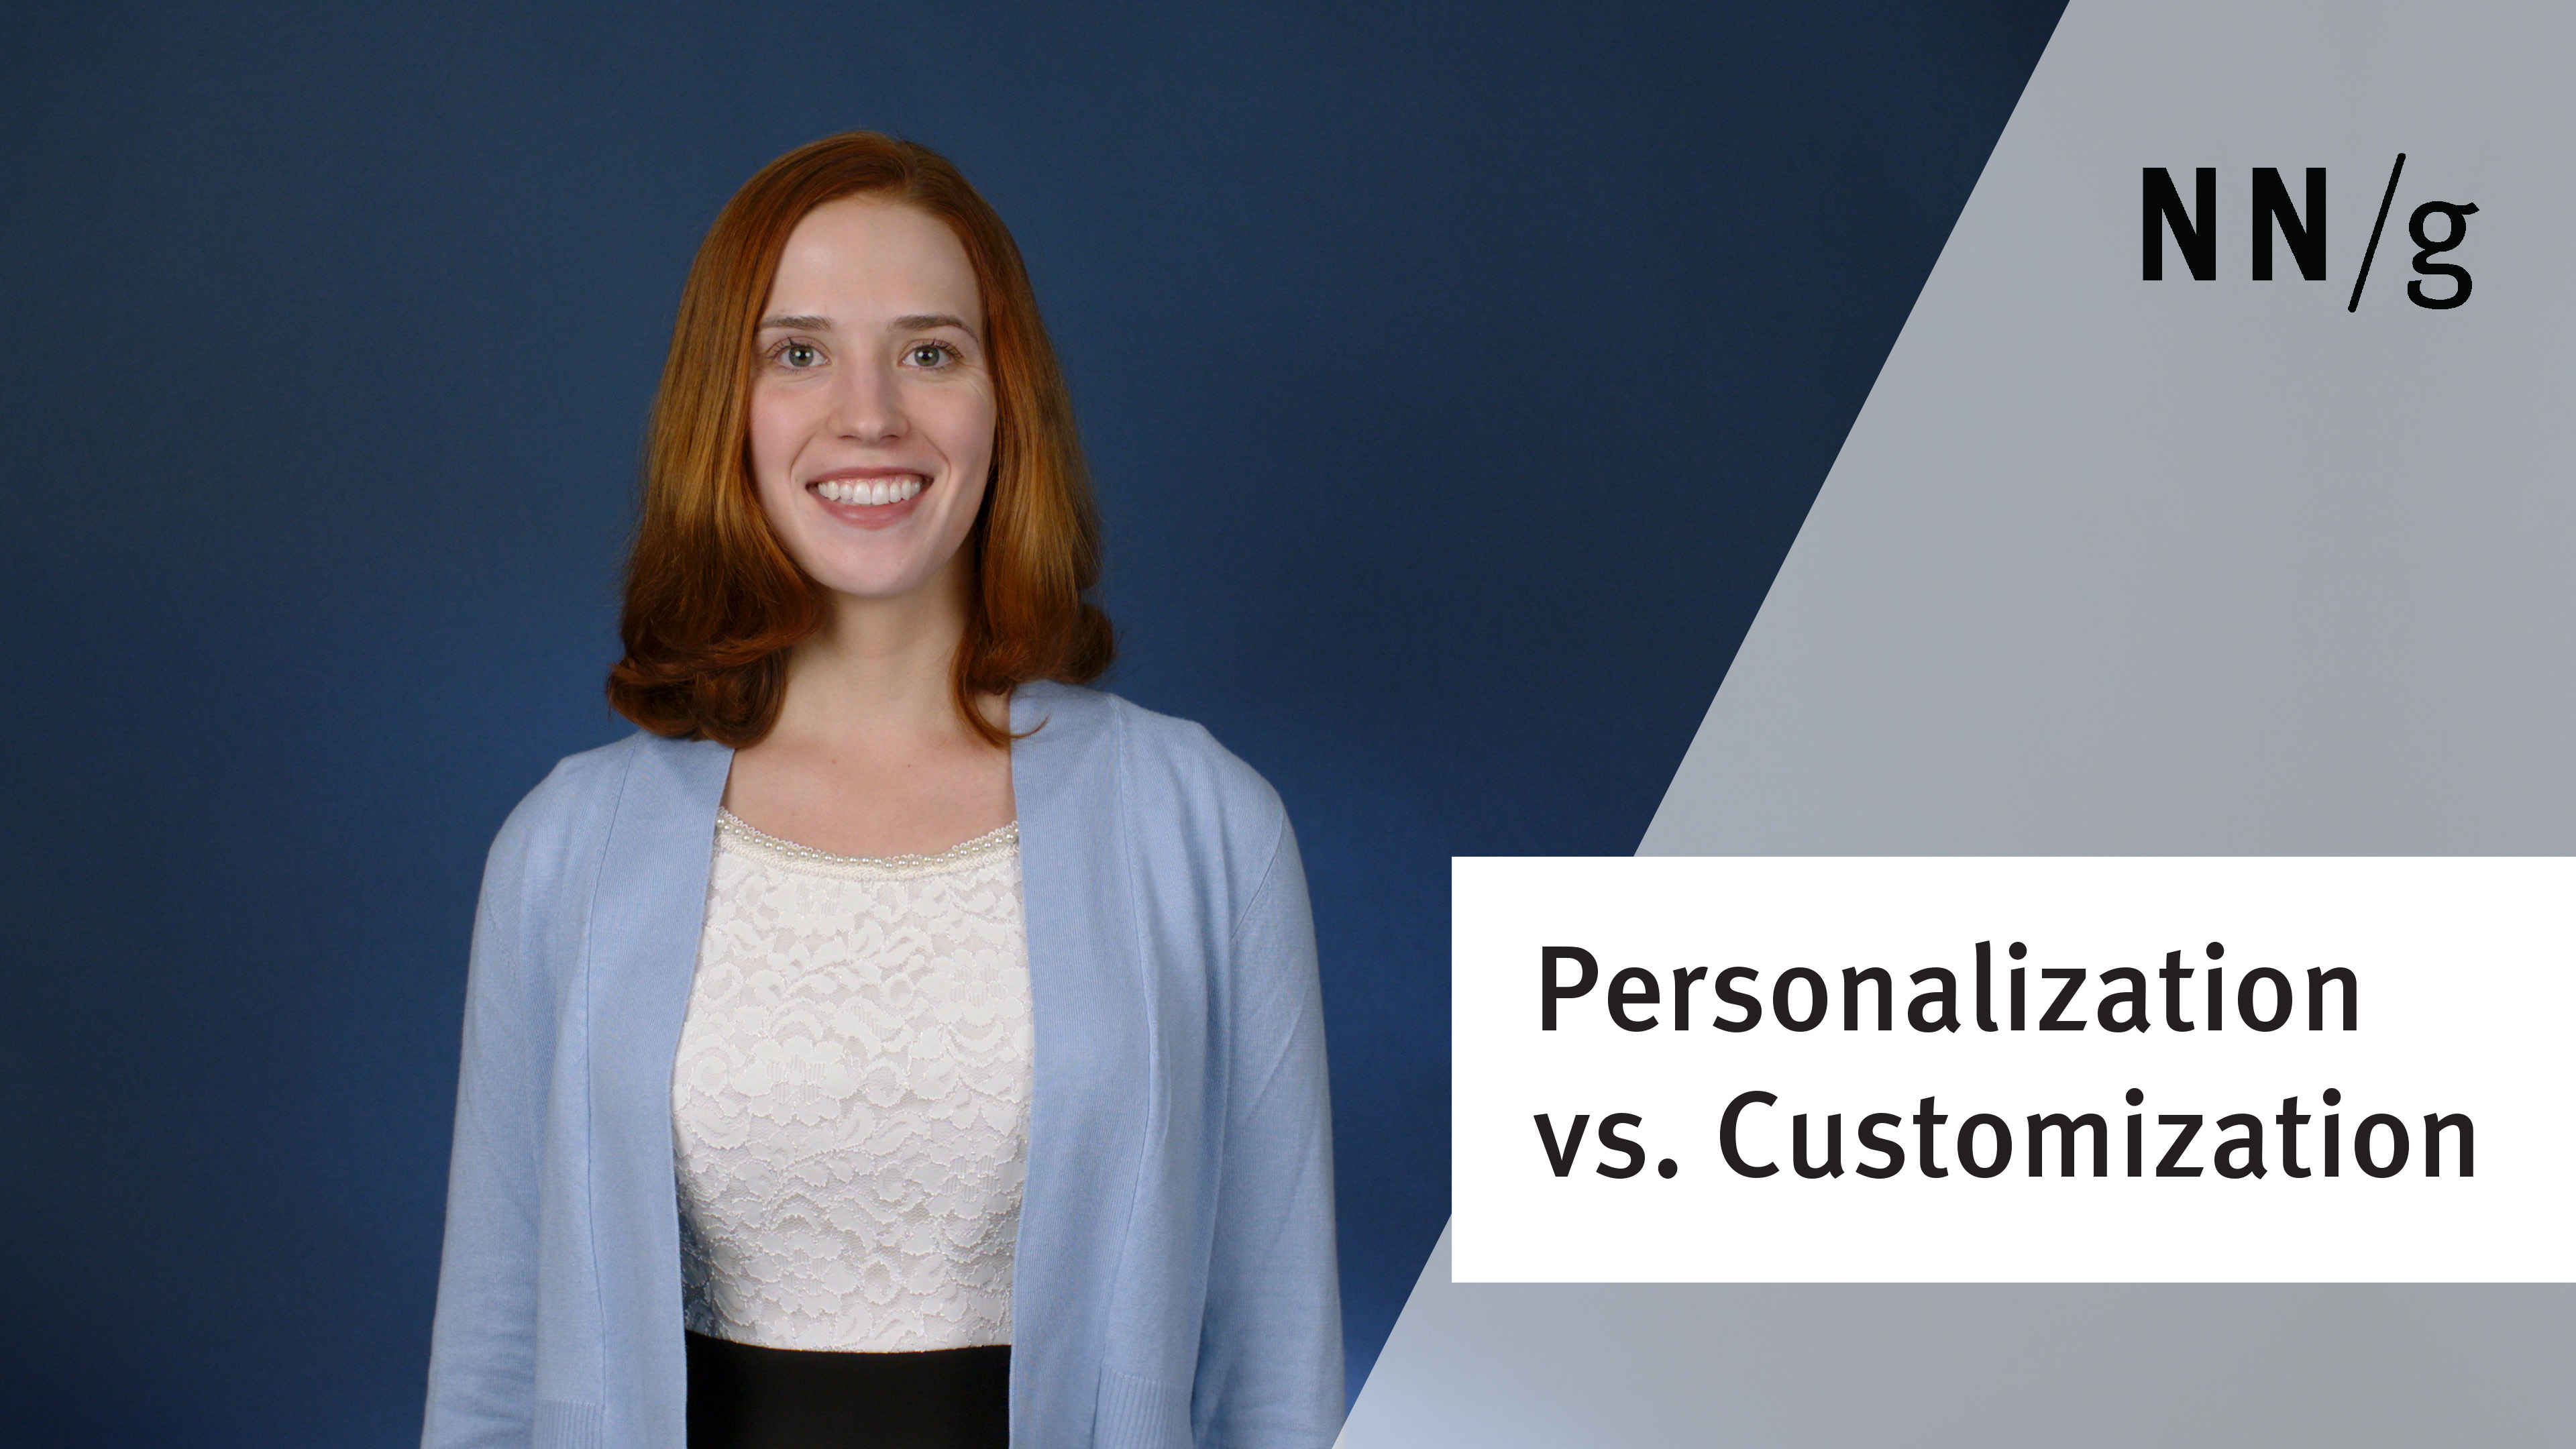 Personalization versus Customization